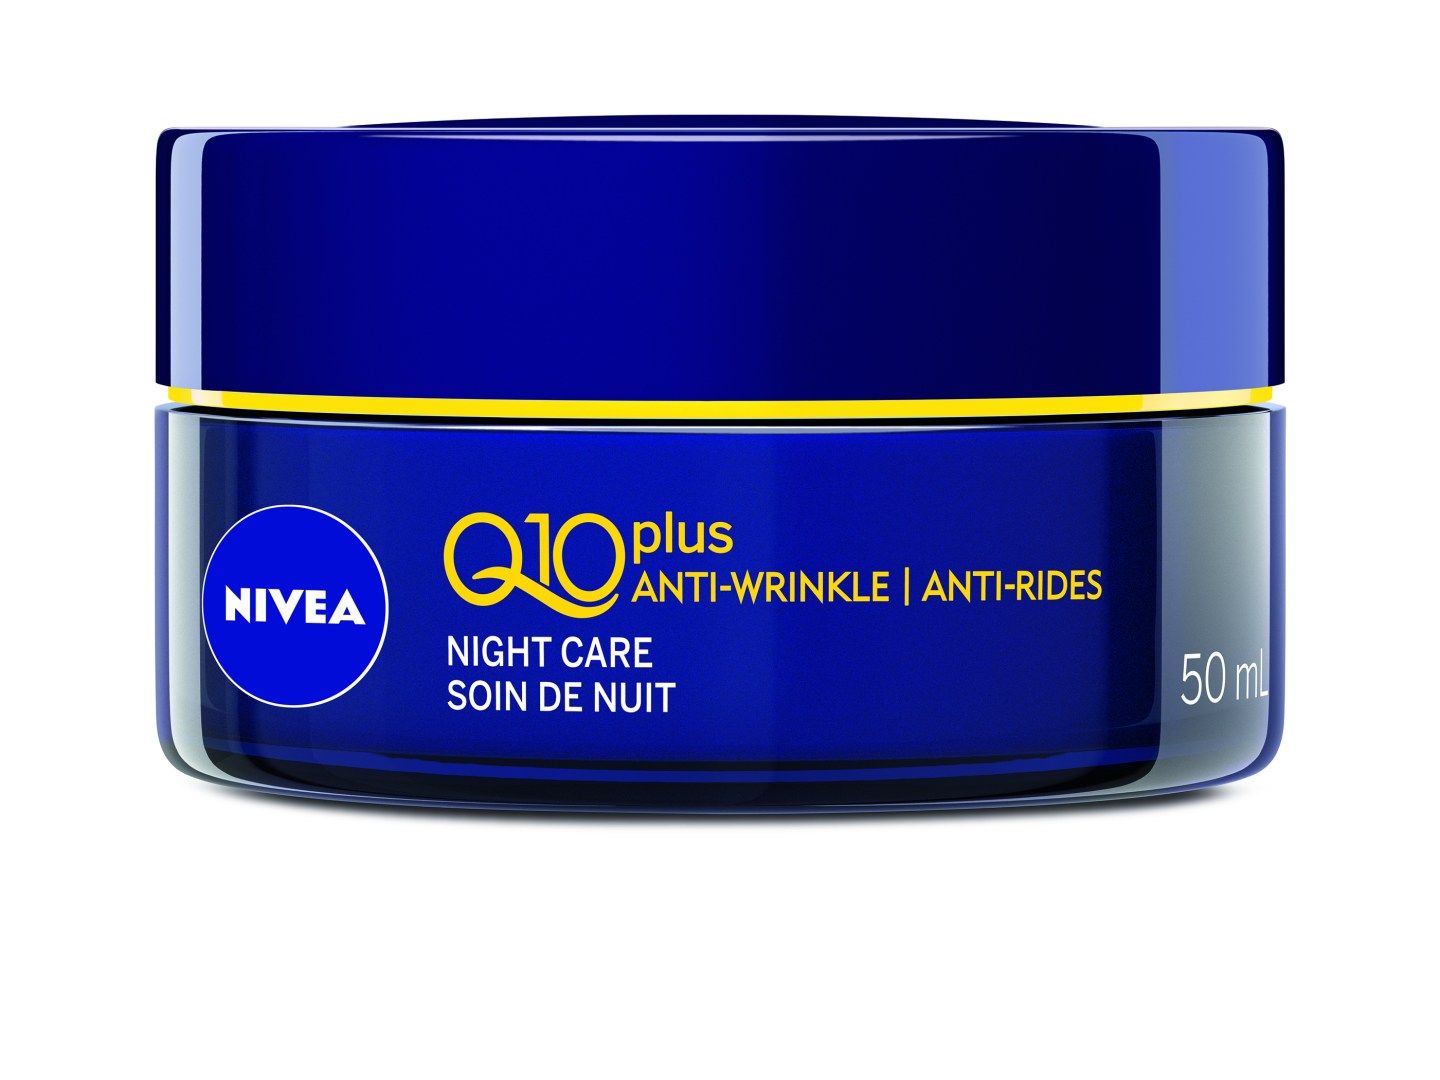 NIVEA Q10 Plus Anti-Wrinkle Night Care 50mL_056594101692_Jar (1).jpg